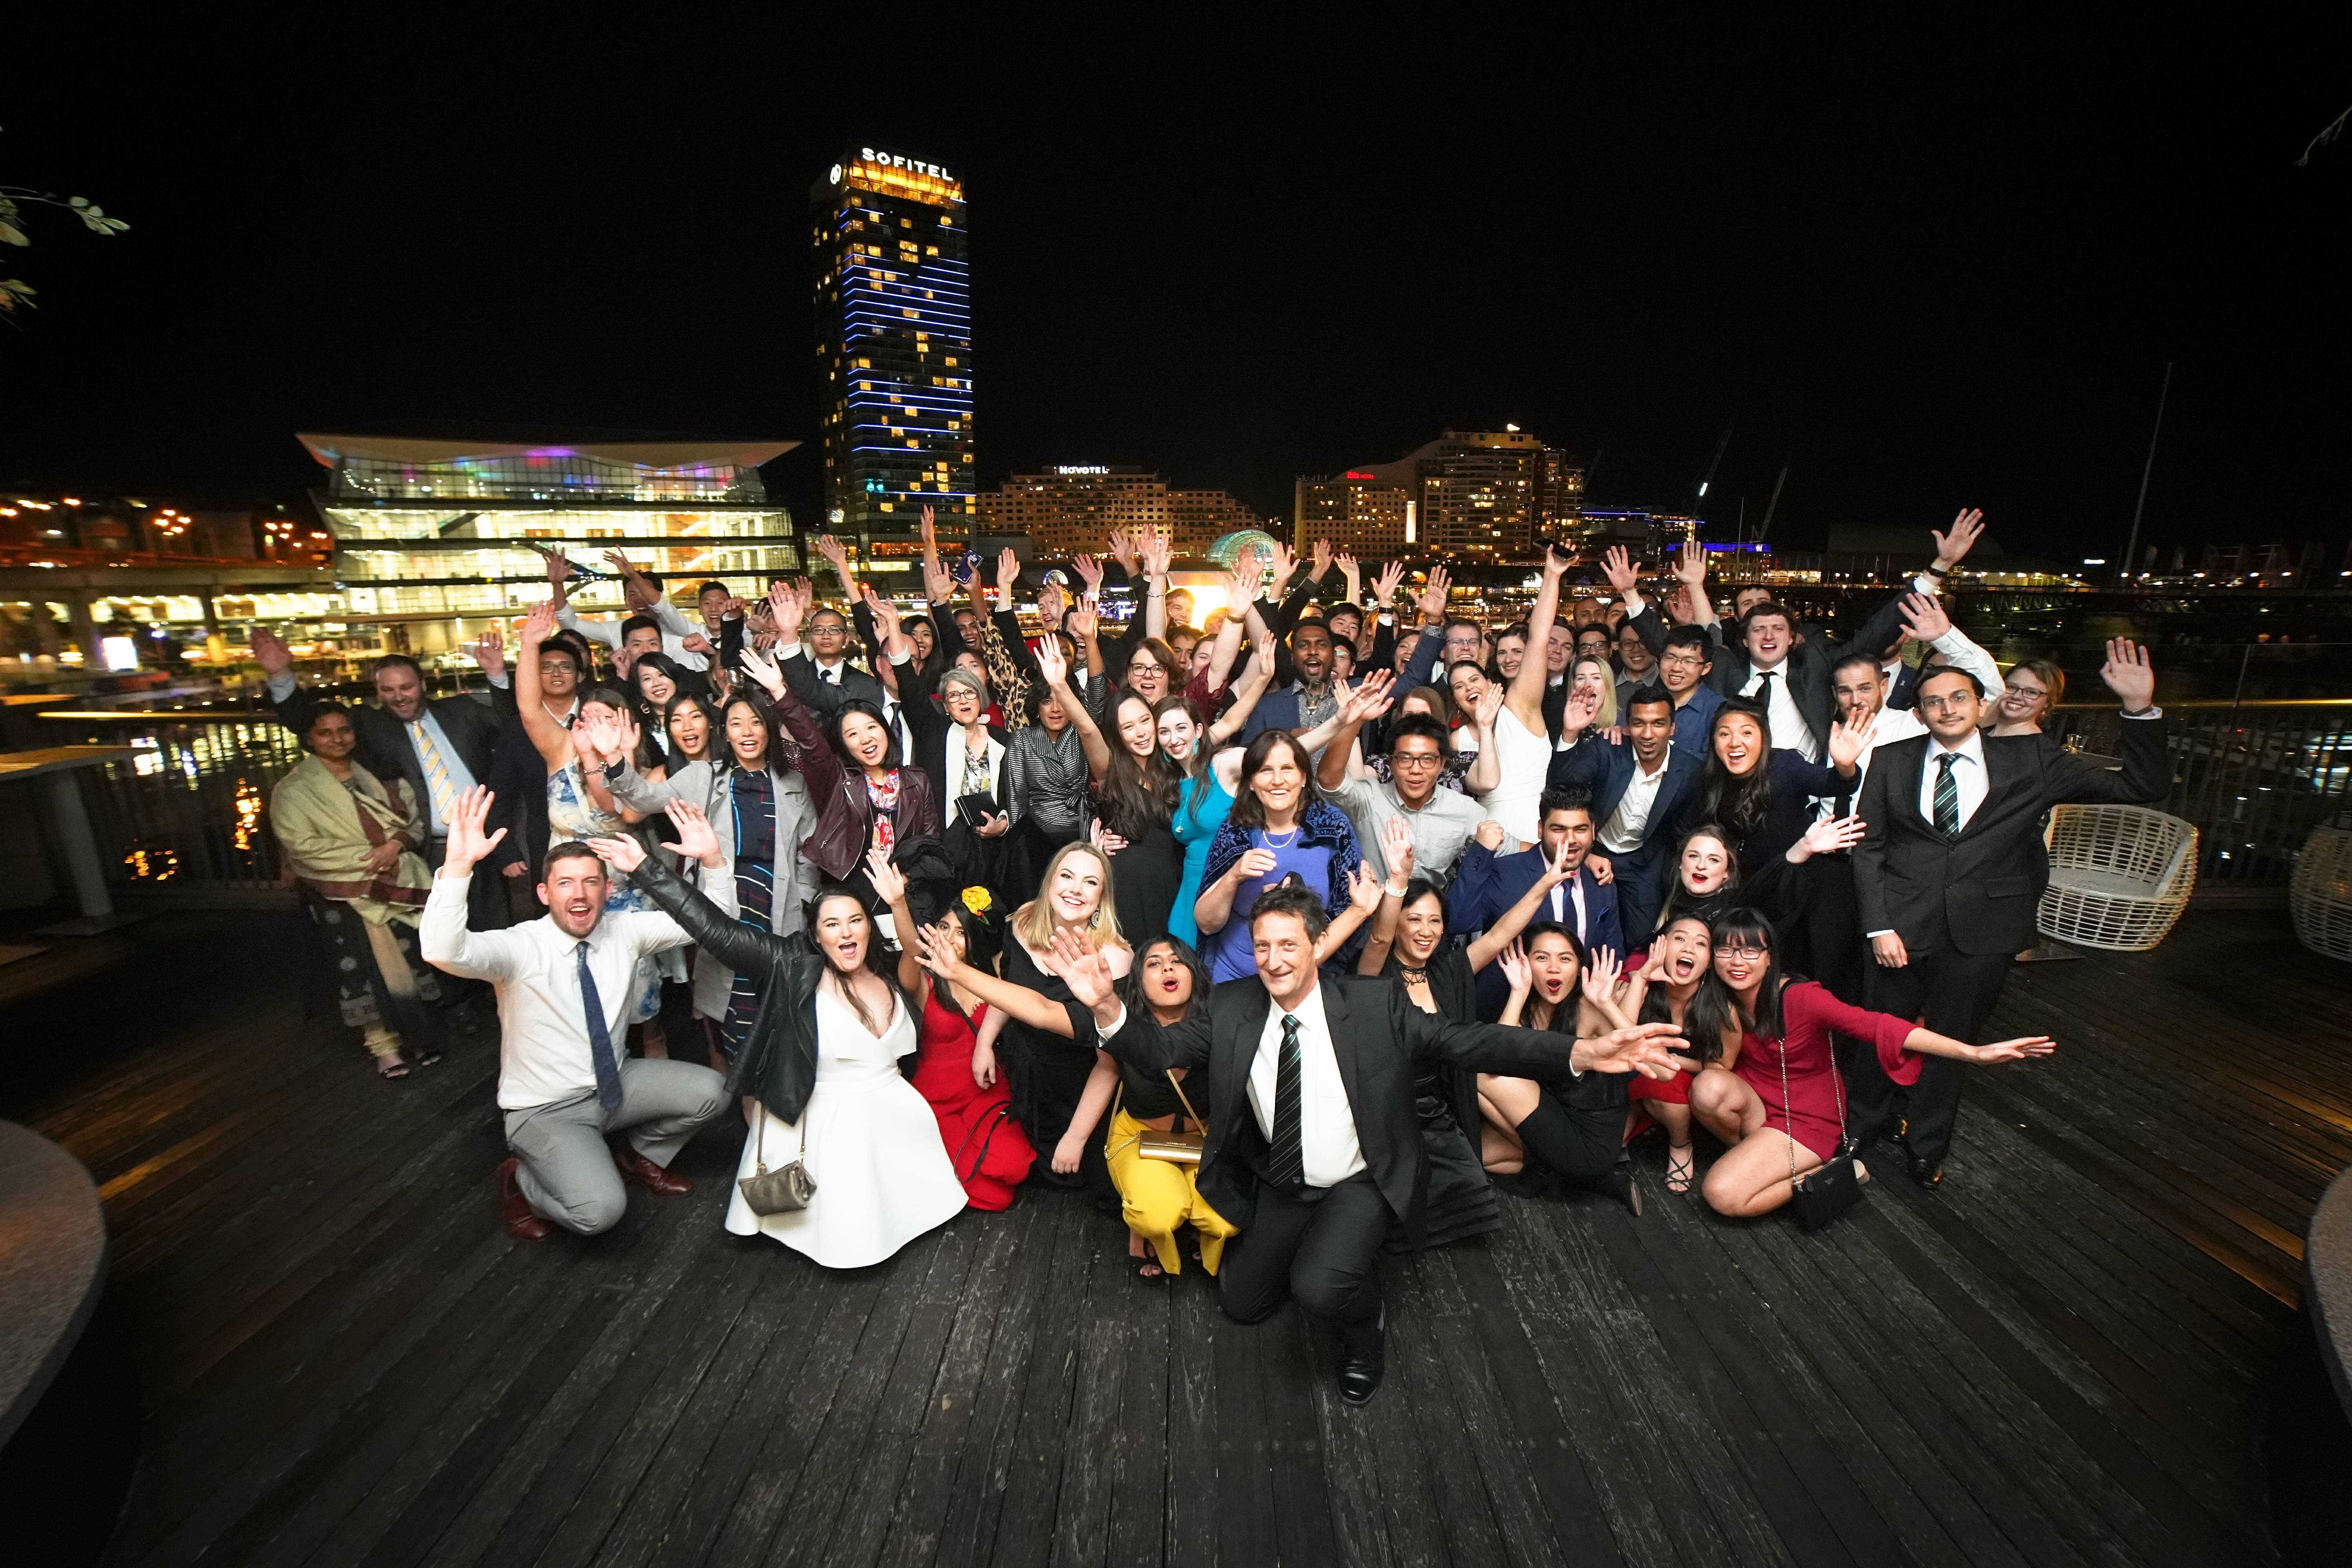 Photograph of residents enjoying a function at night by the harbour with city lights in the background